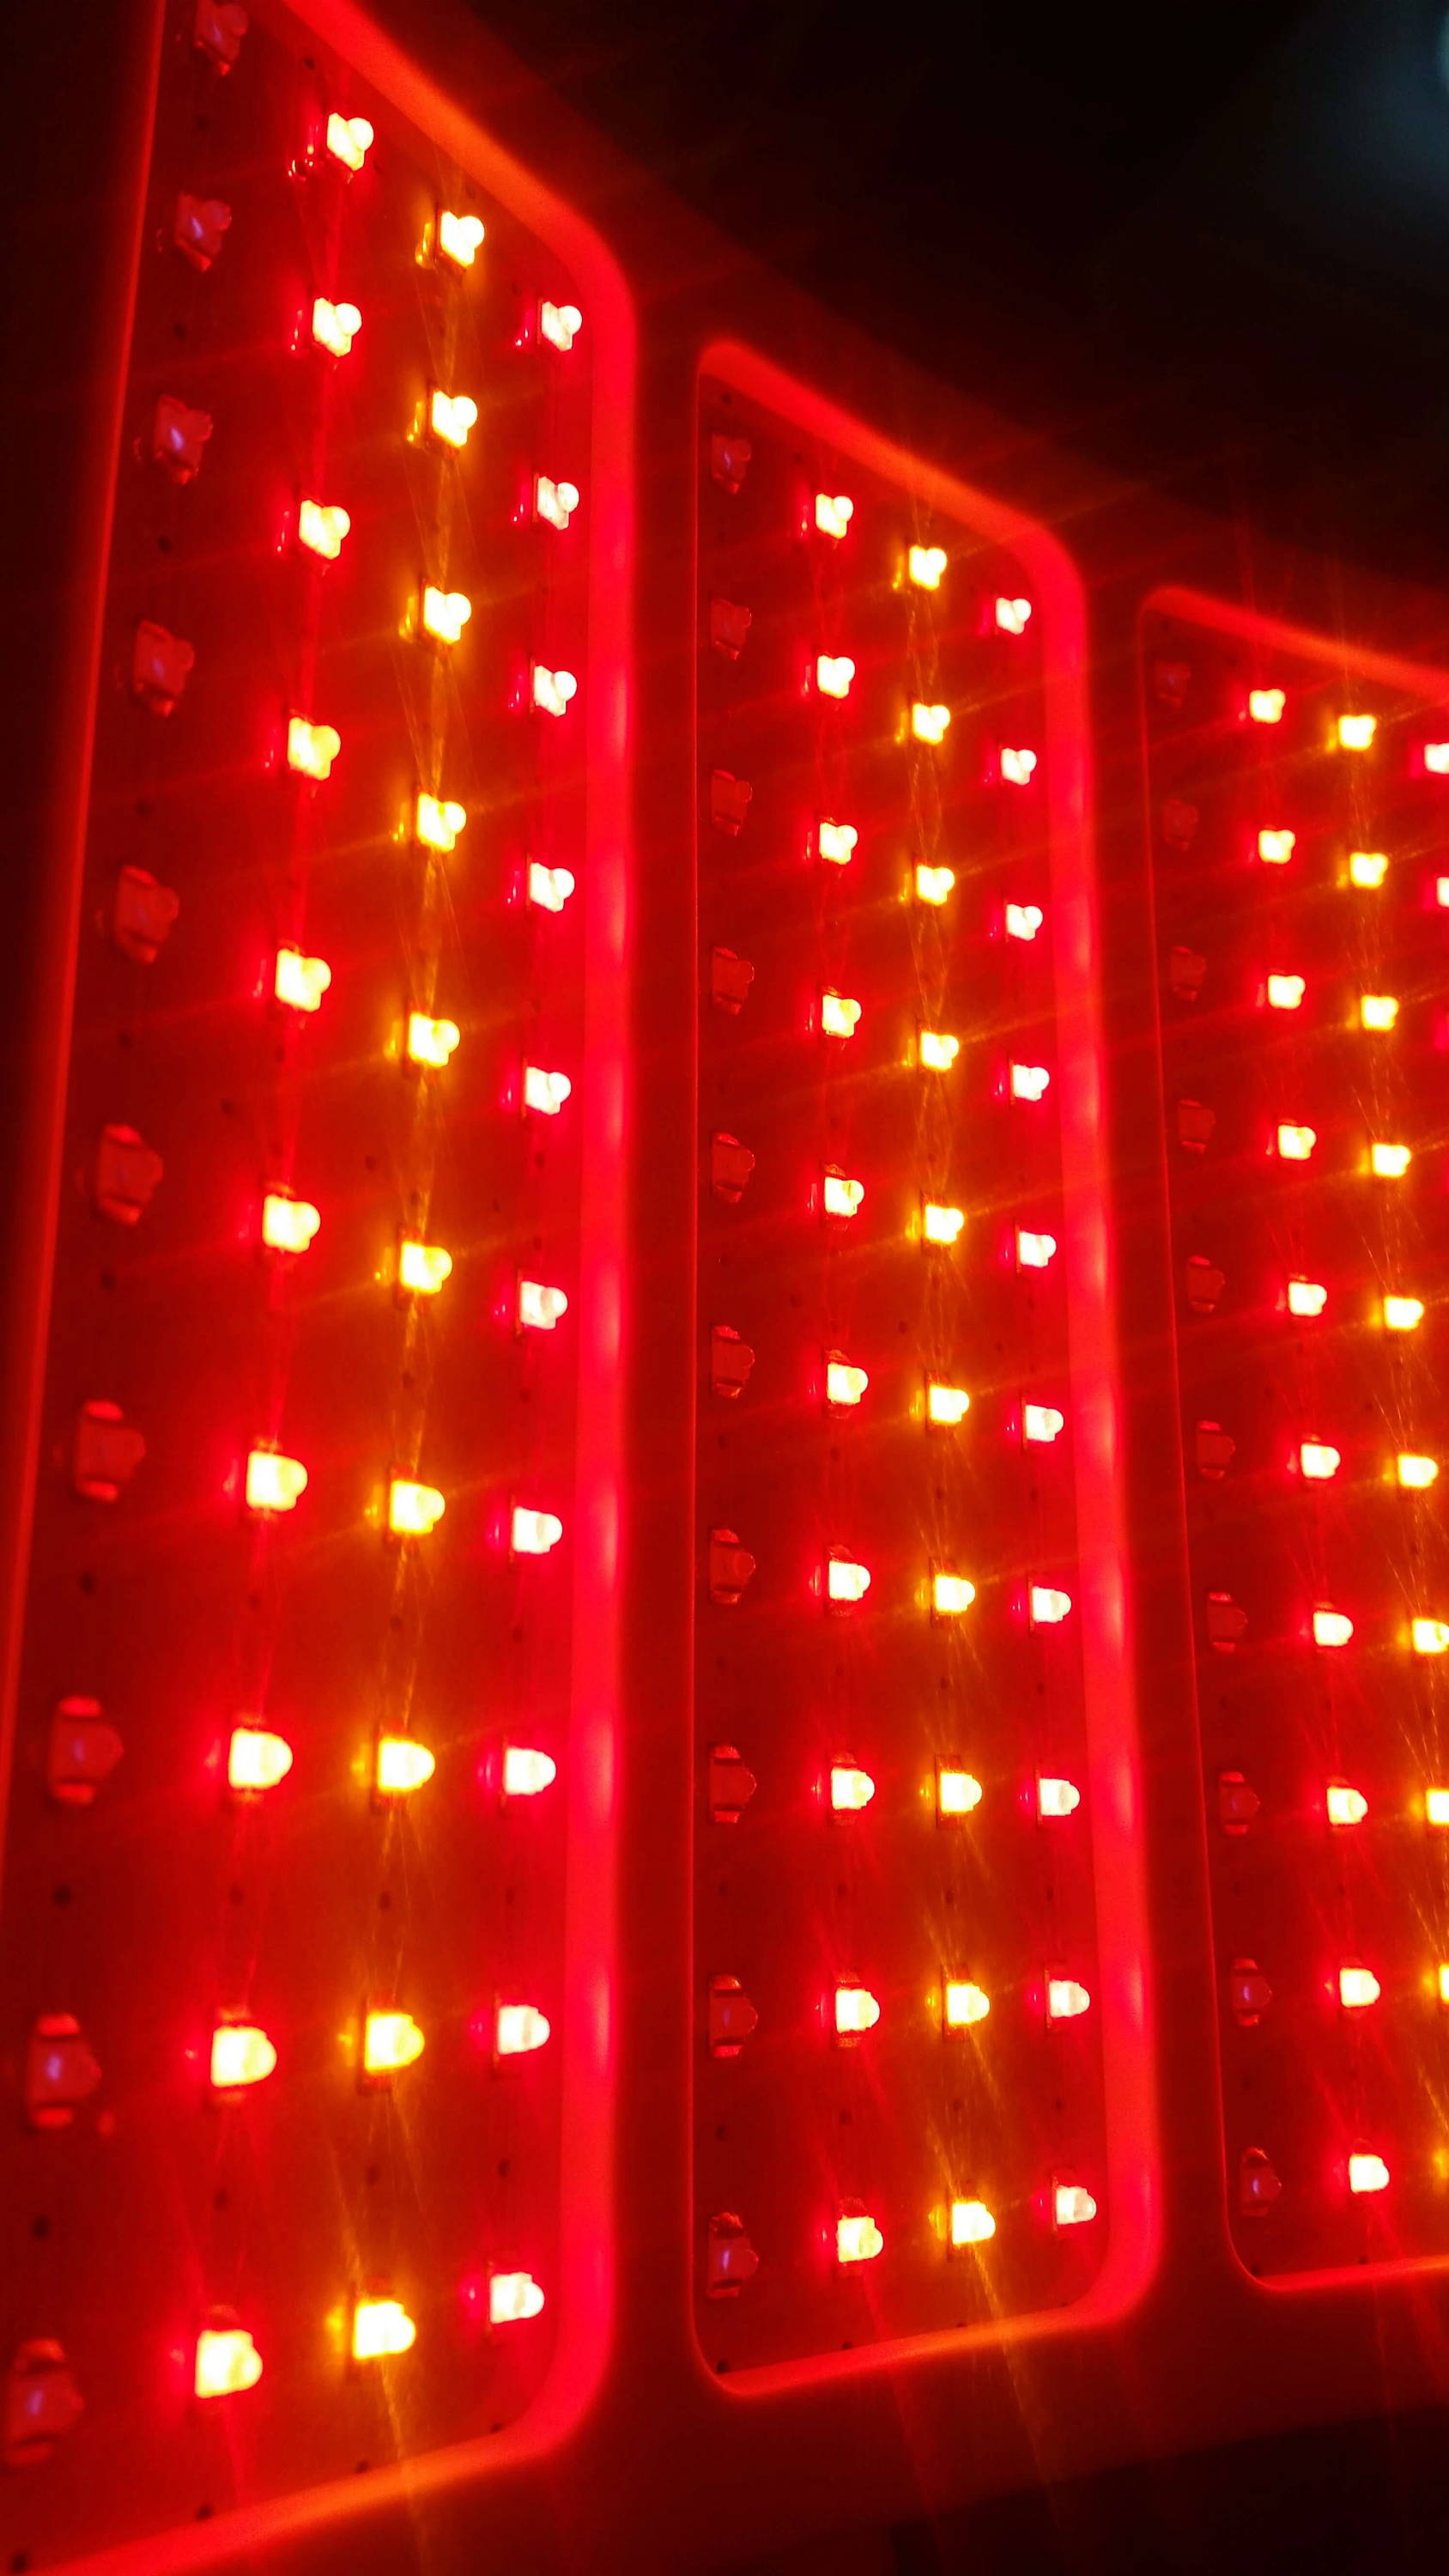 red light panel